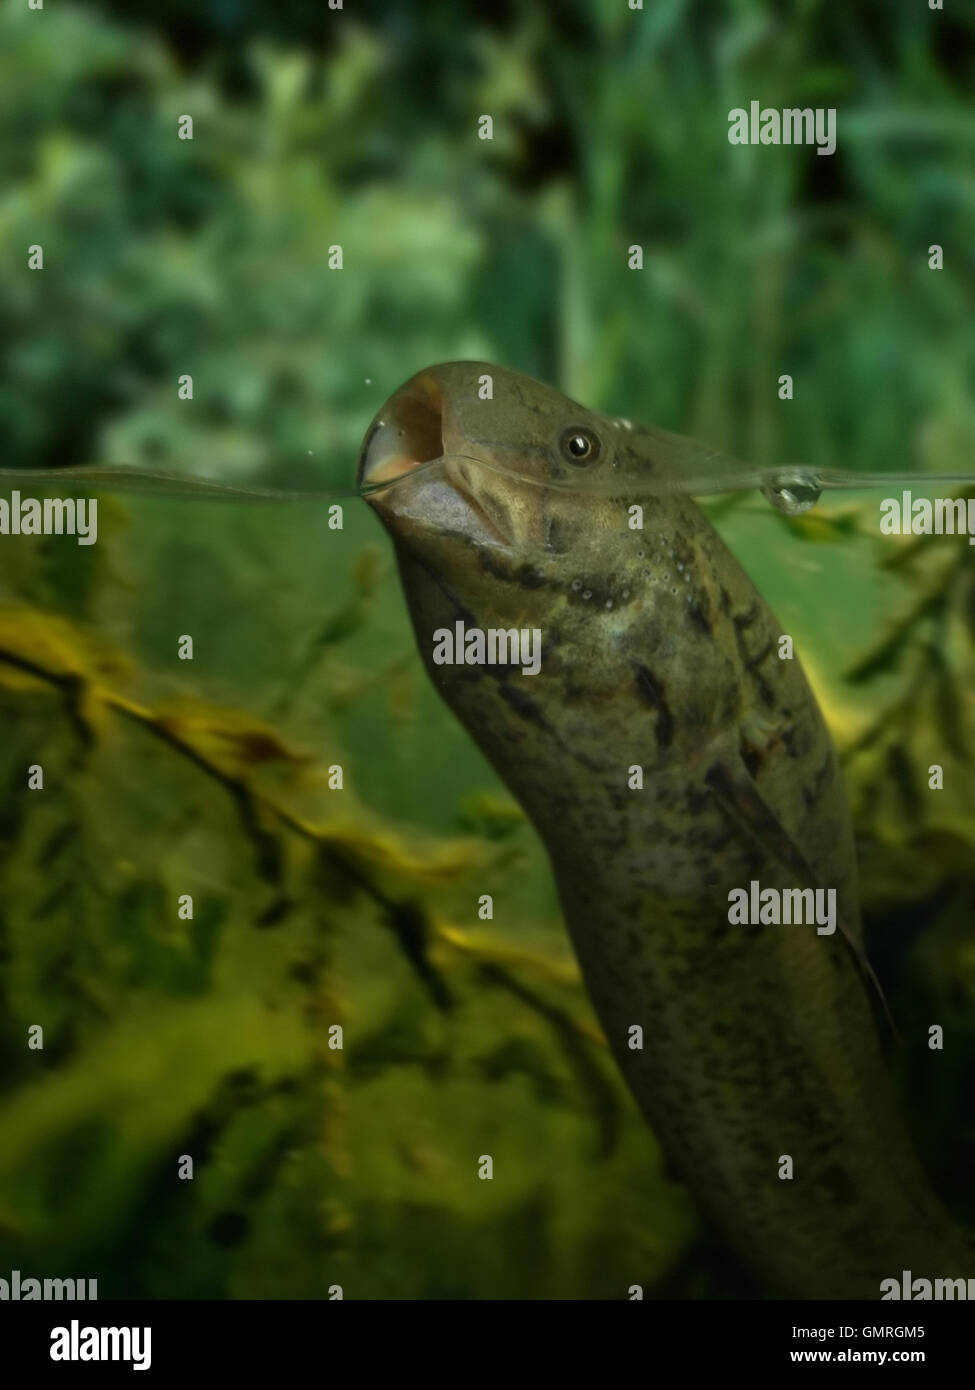 Slender lungfish, Protopterus dolloi. Breathing at surface. Head detail. - Stock Image